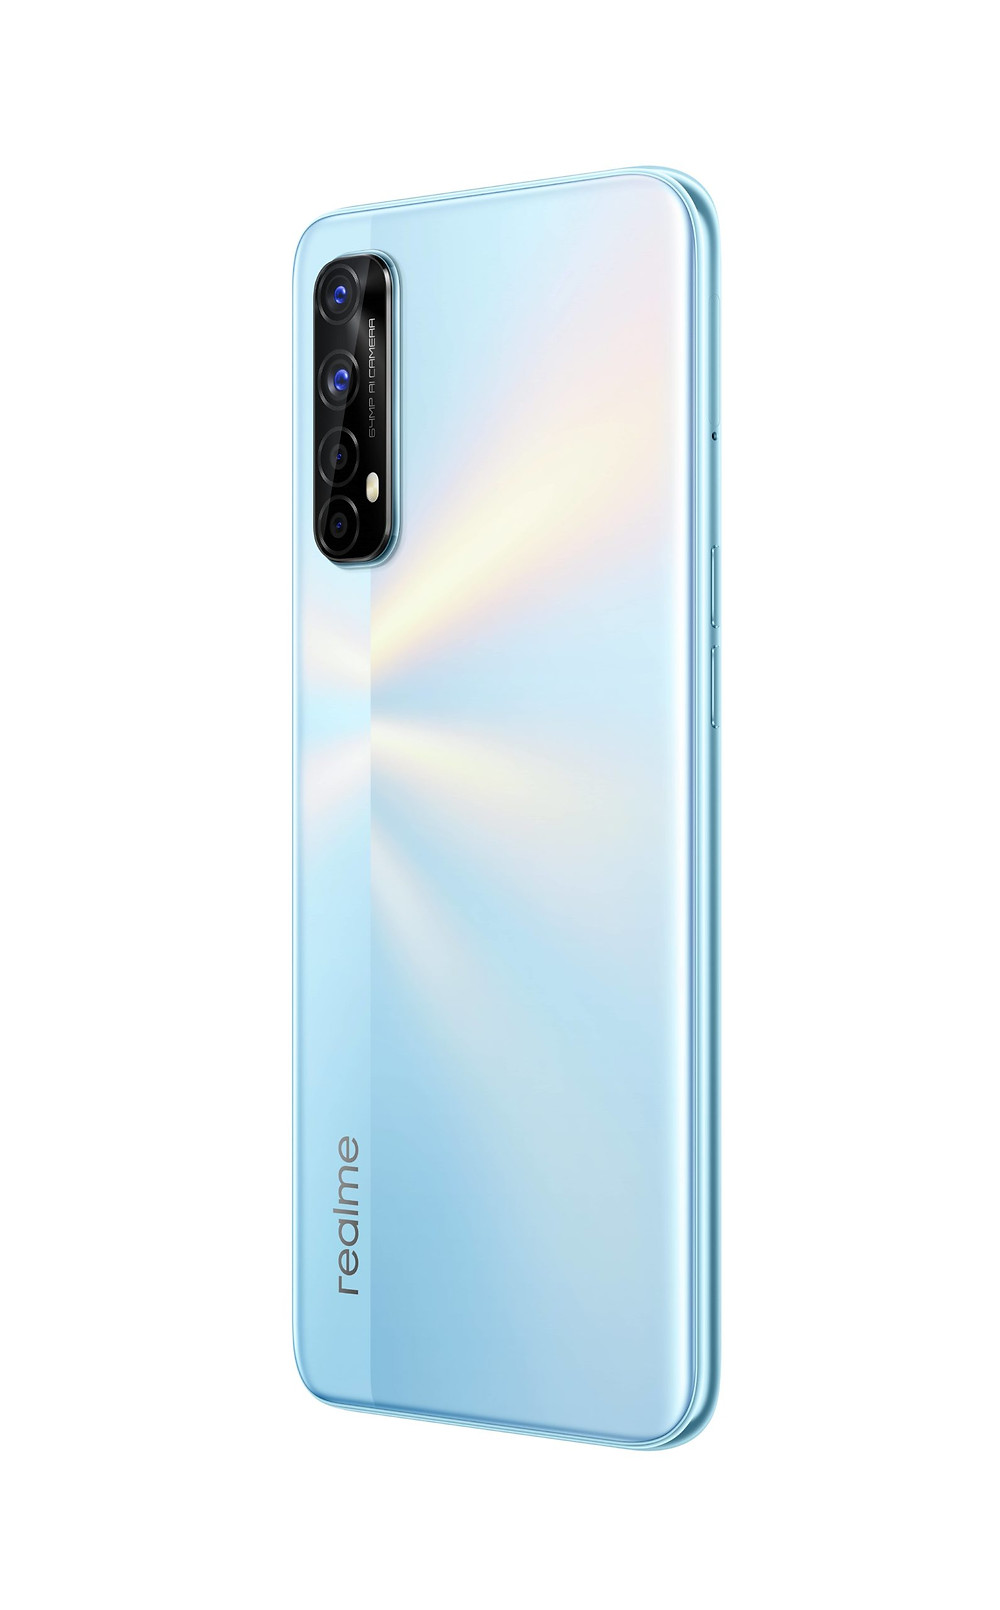 Realme launches its 7-series smartphone in the UAE